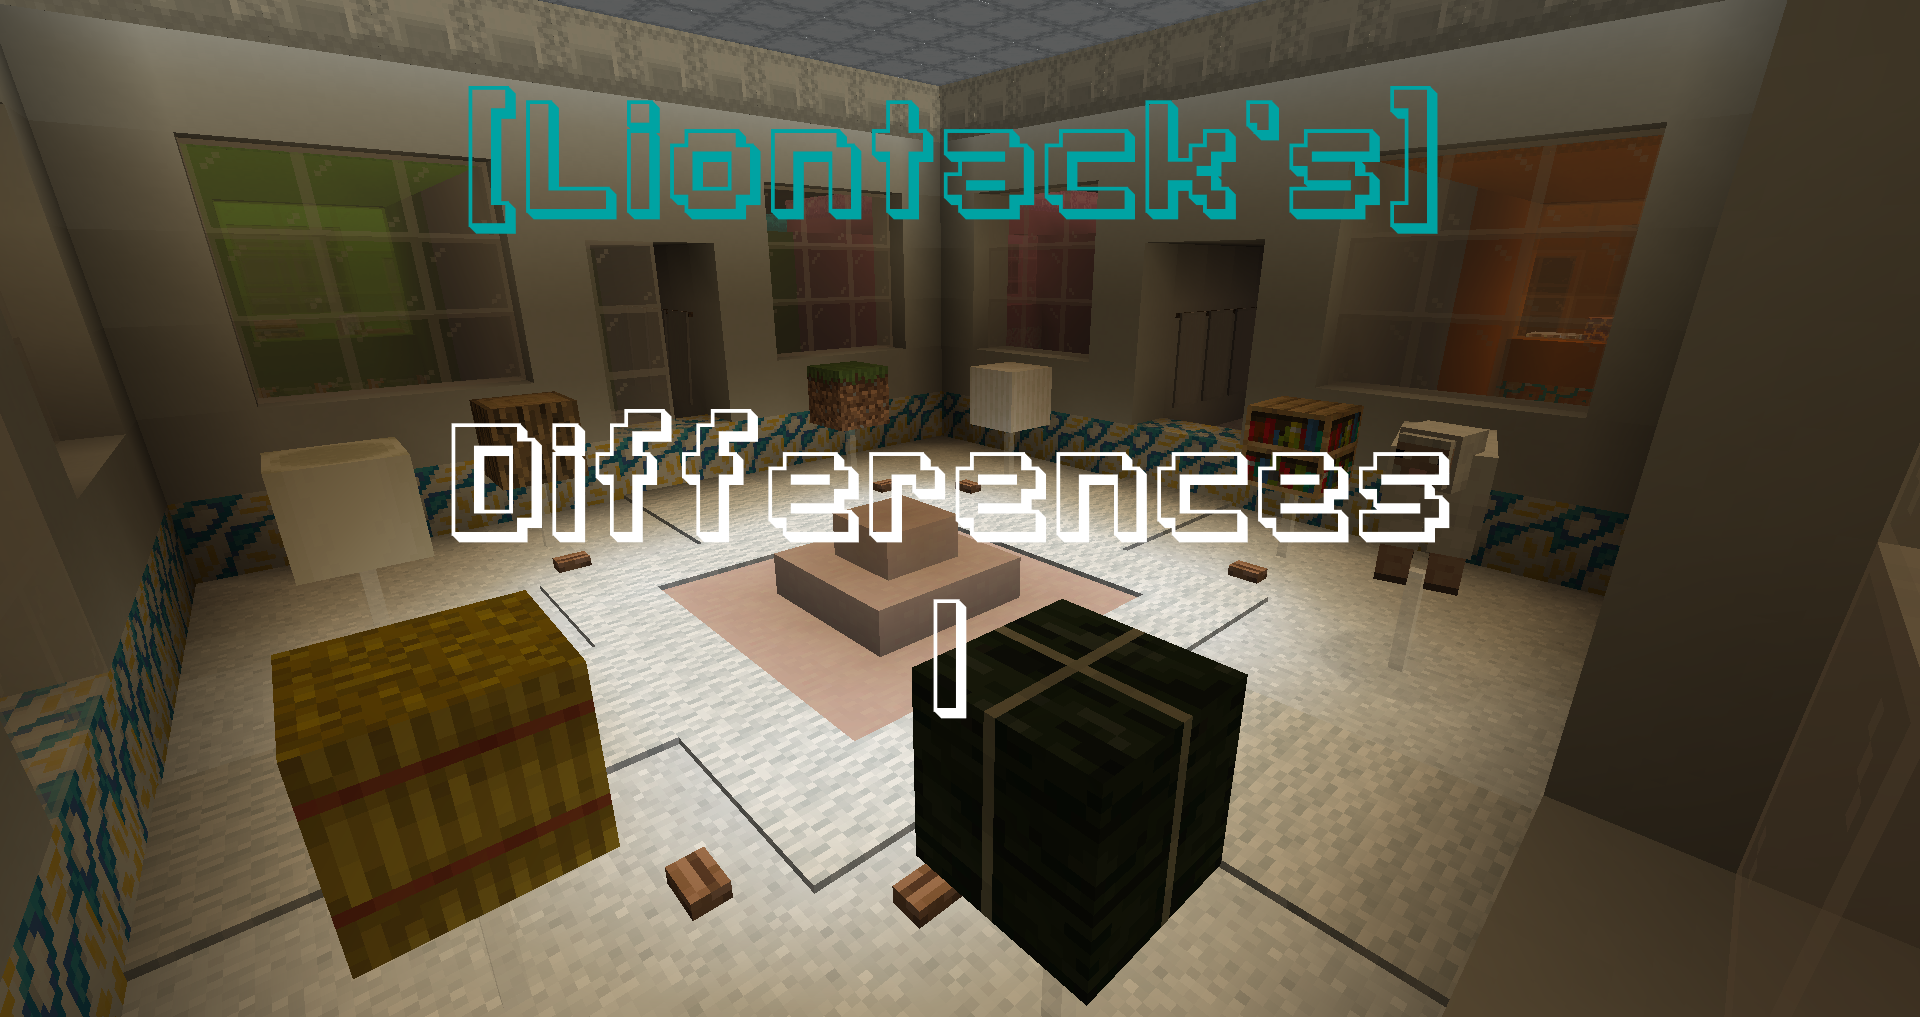 Download [Liontack's] Differences 1 for Minecraft 1.15.2